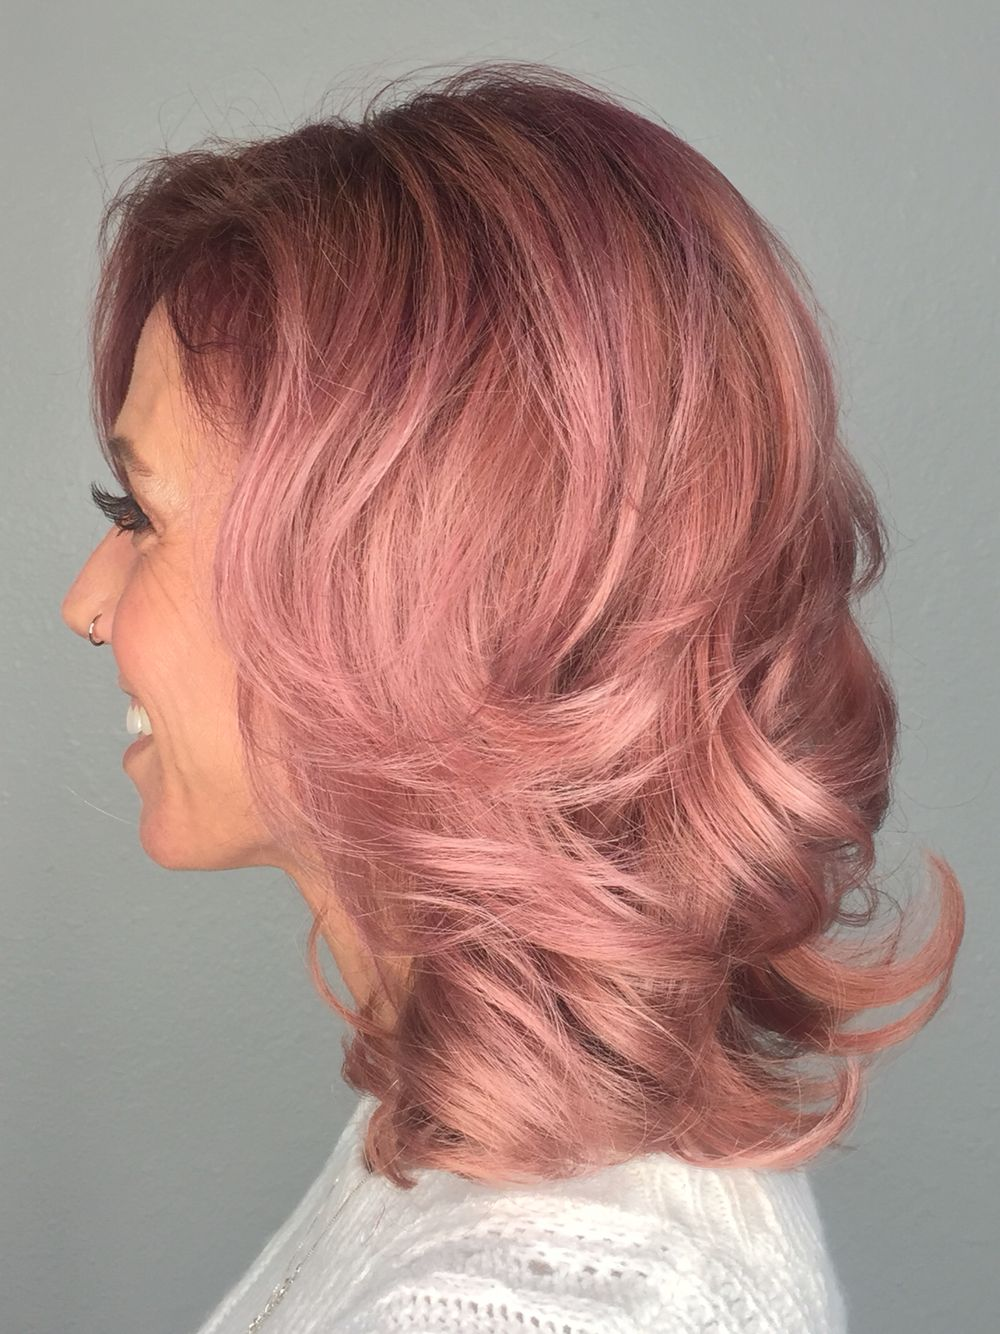 Dusty Rose/rose gold with a rooted base. I created this color using Kevin Murphy Color.Me all formulations can be found on my IG kellymallery_hairstylist